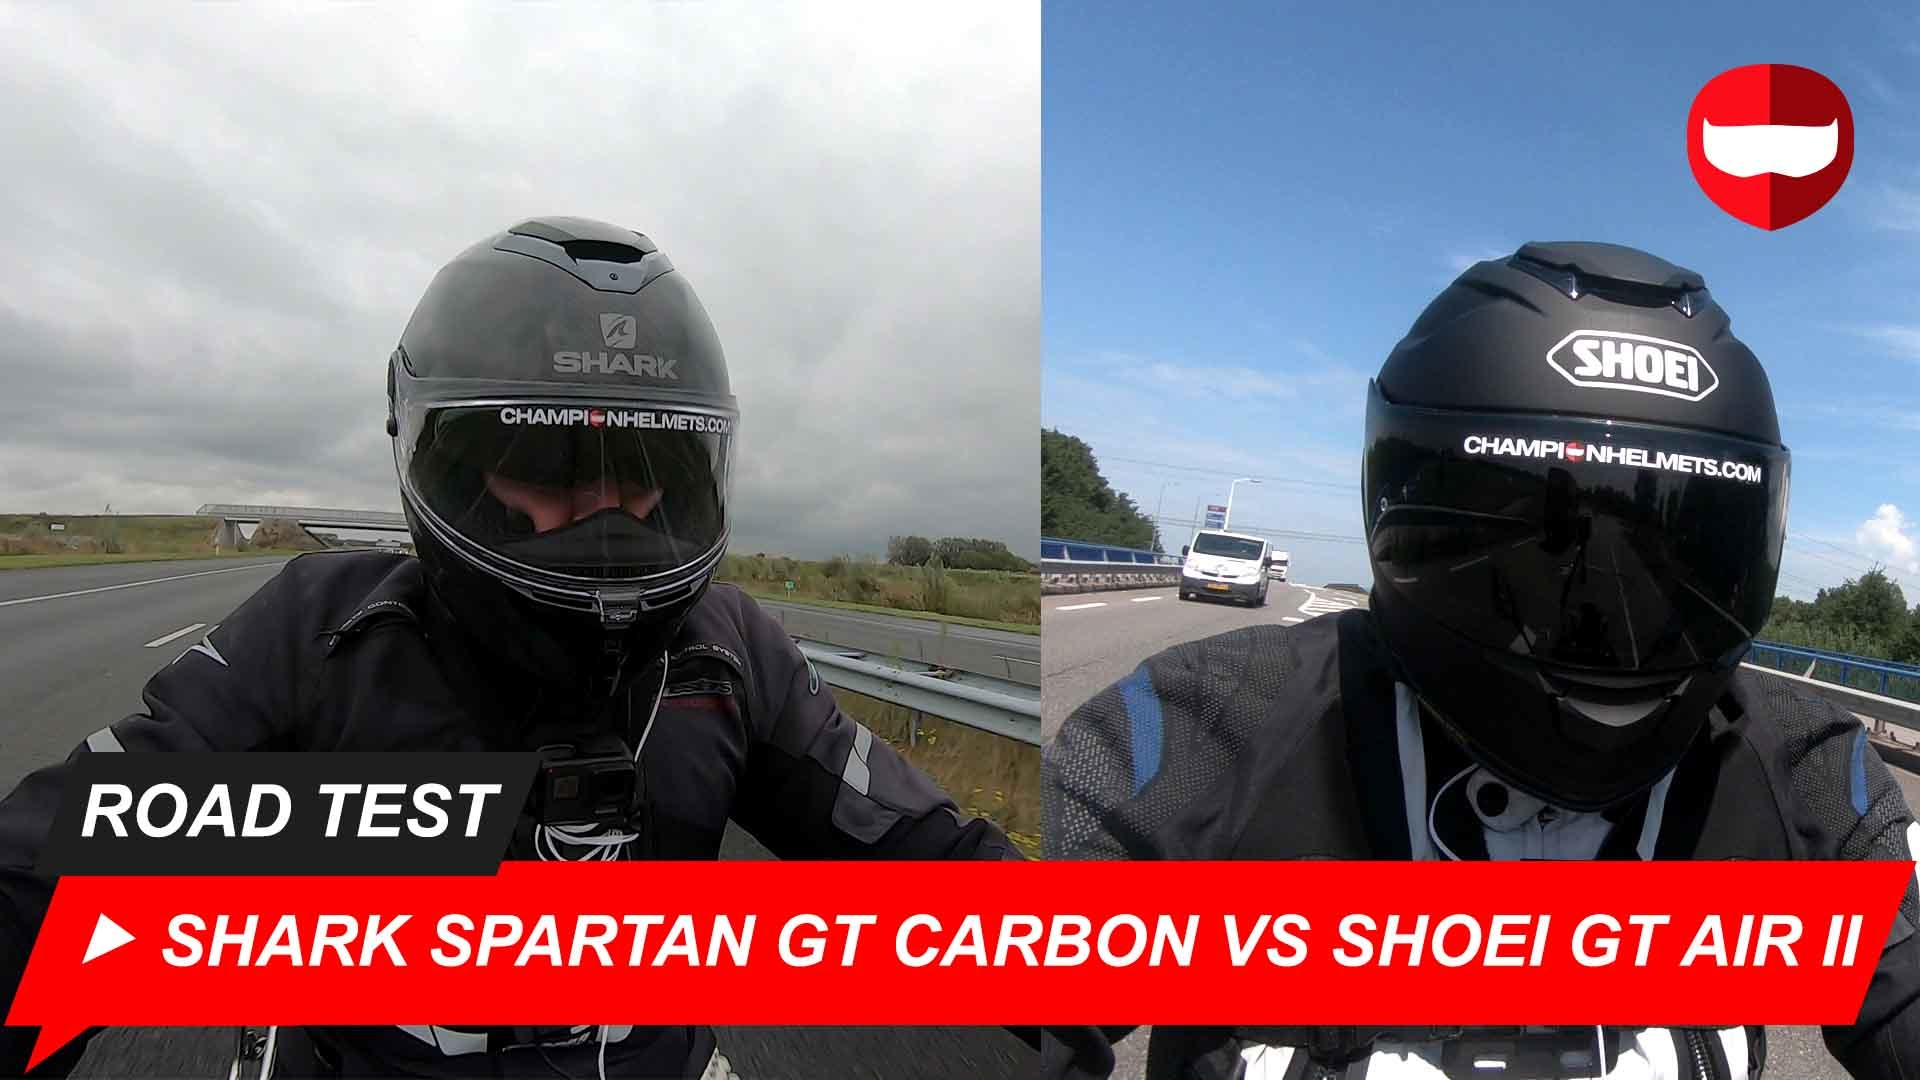 Shark Spartan GT Carbon vs Shoei GT Air 2 Road Test and Video